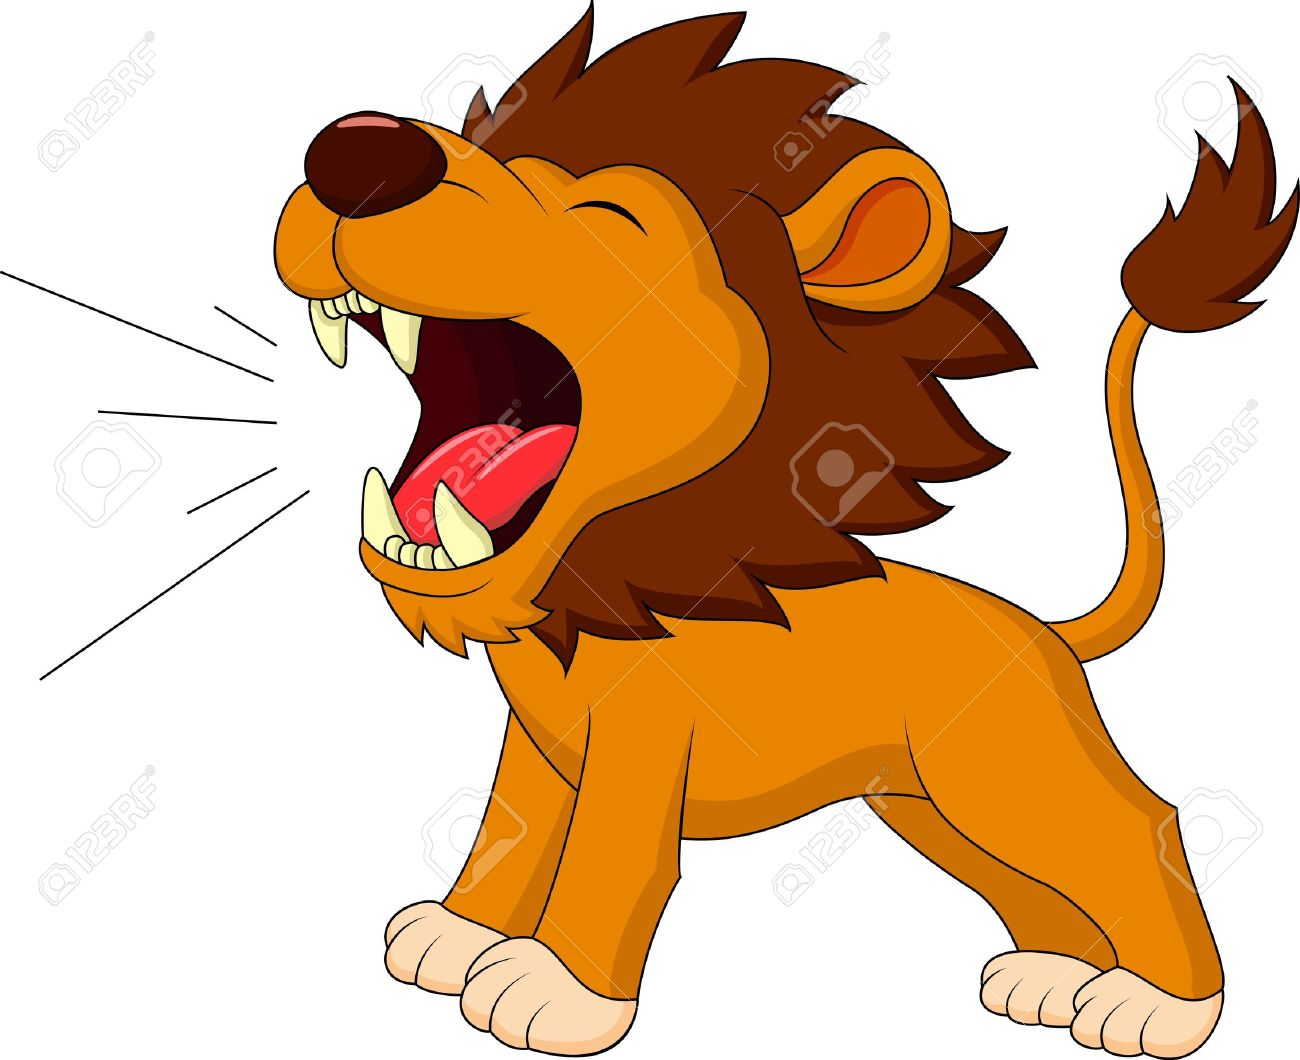 lion cartoon roaring royalty free cliparts vectors and stock rh 123rf com  roaring lion clipart black and white